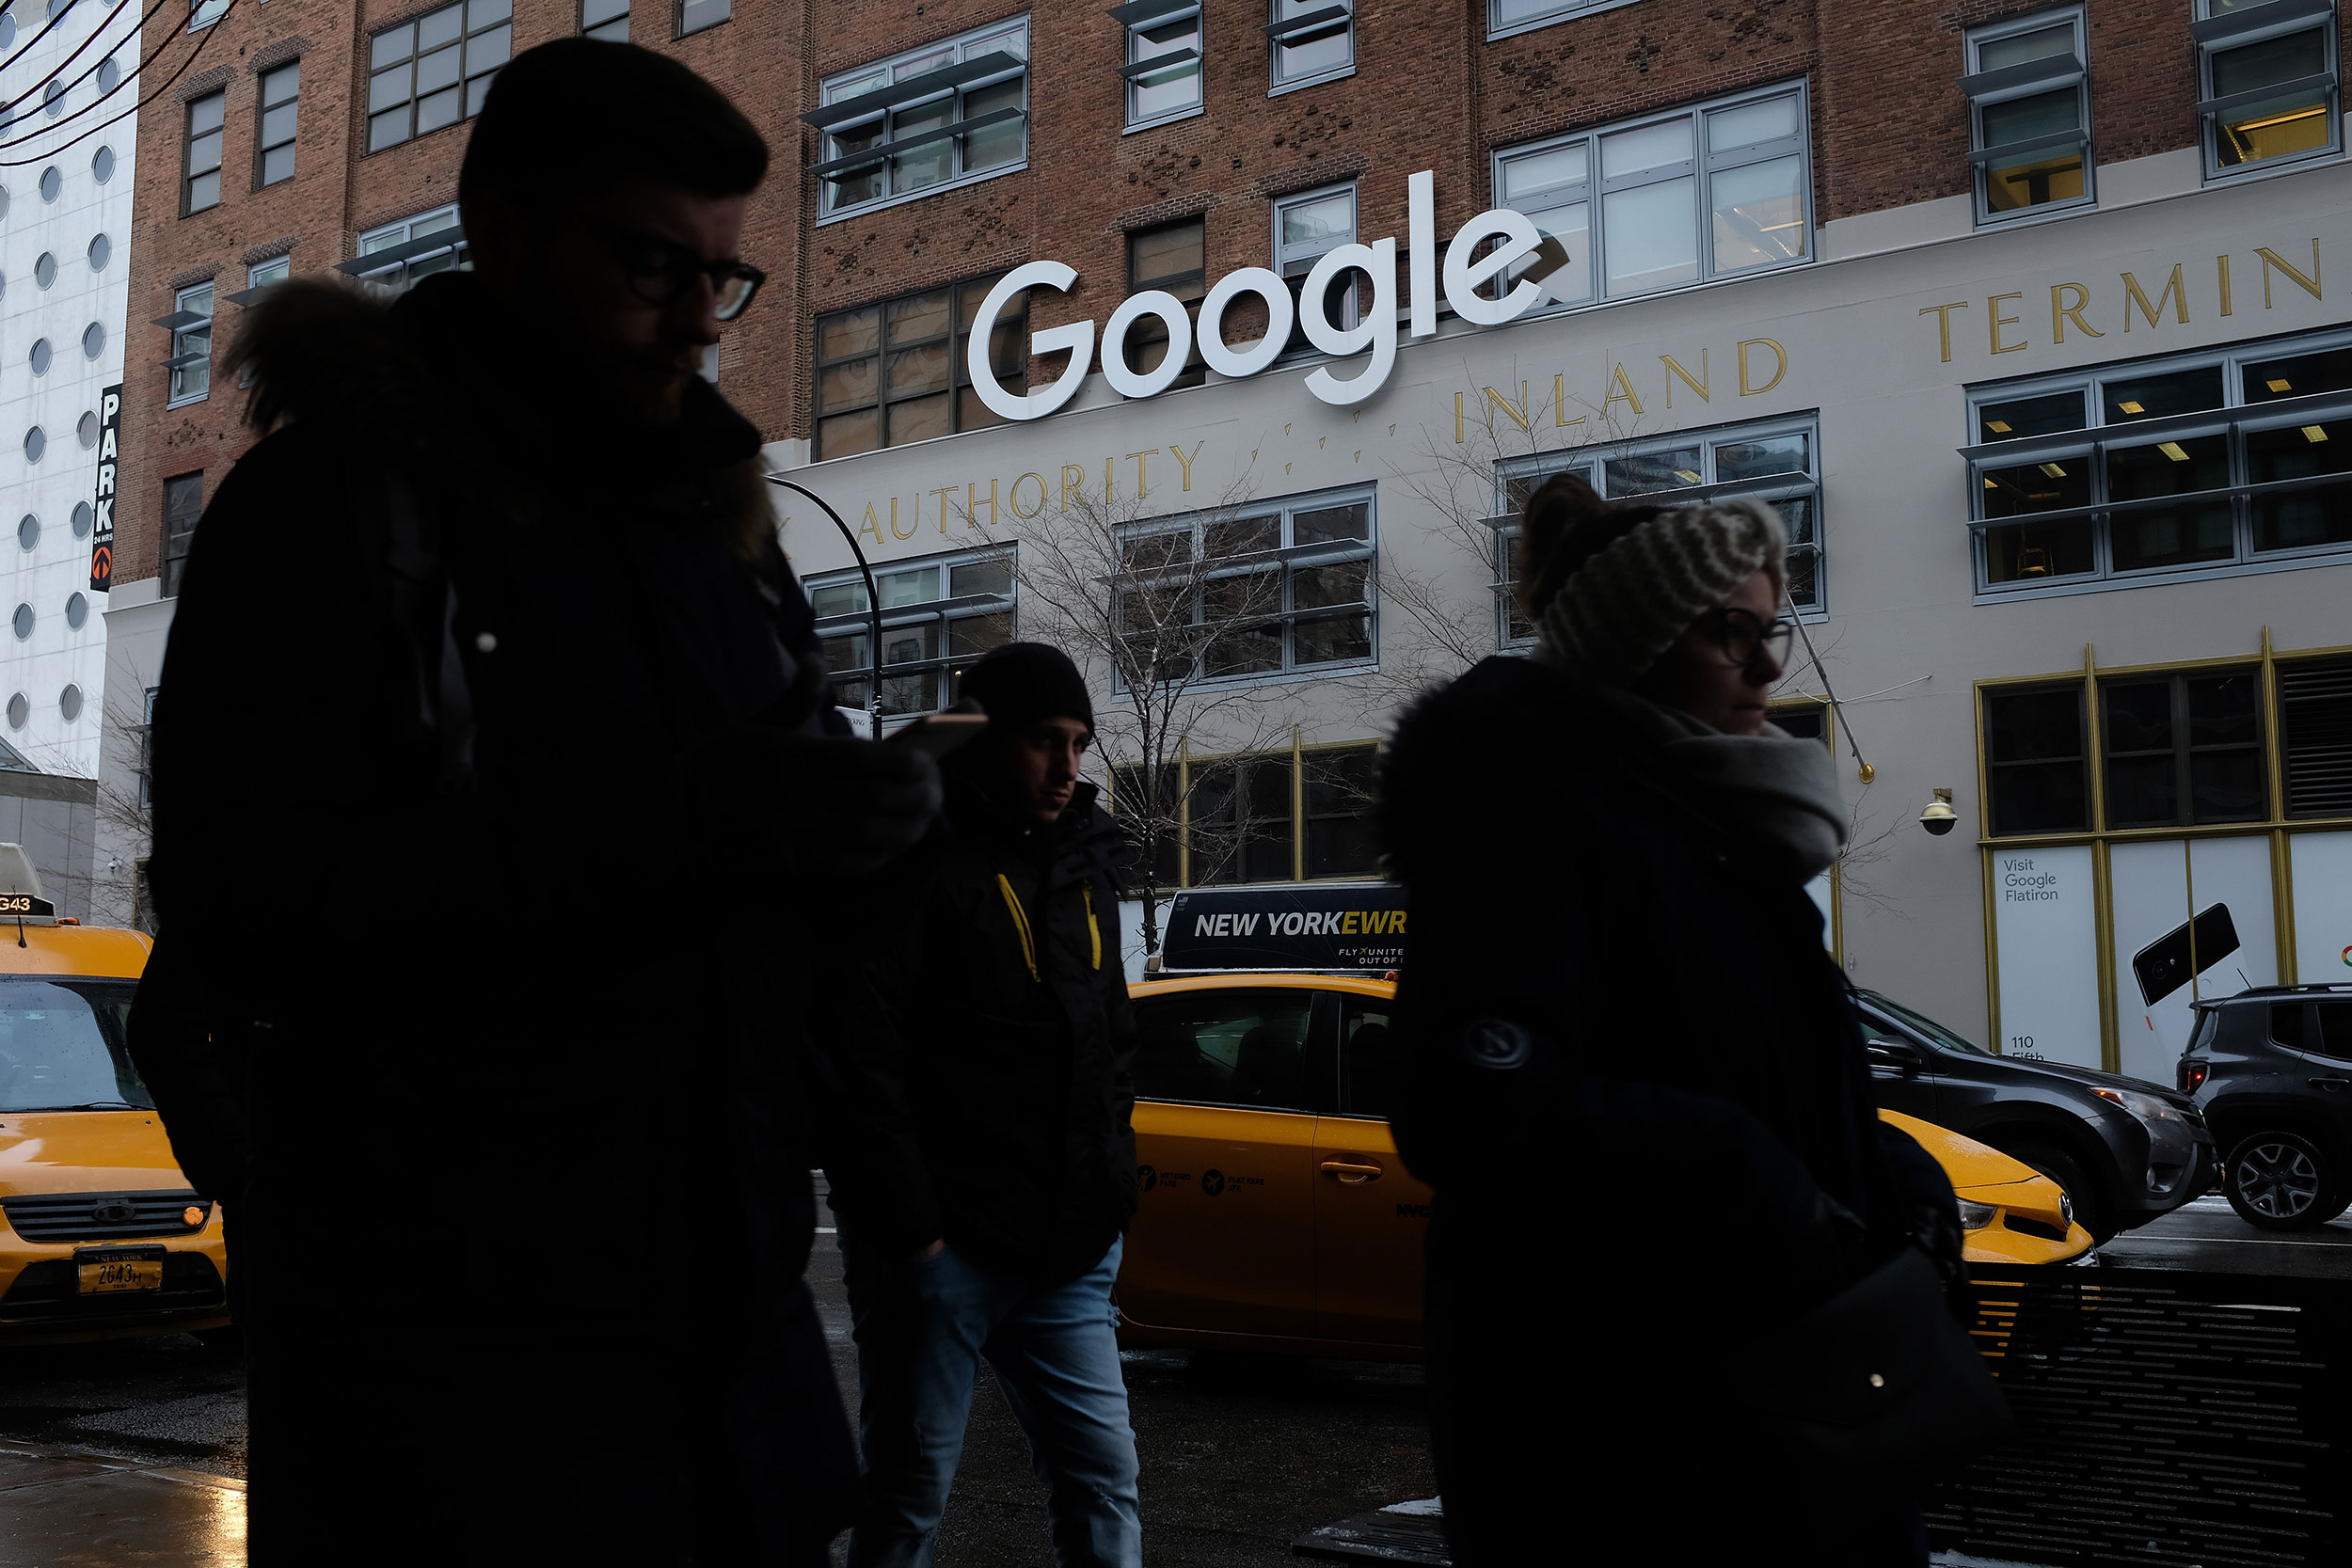 People walk past the Google office building in New York City on December 30, 2017.